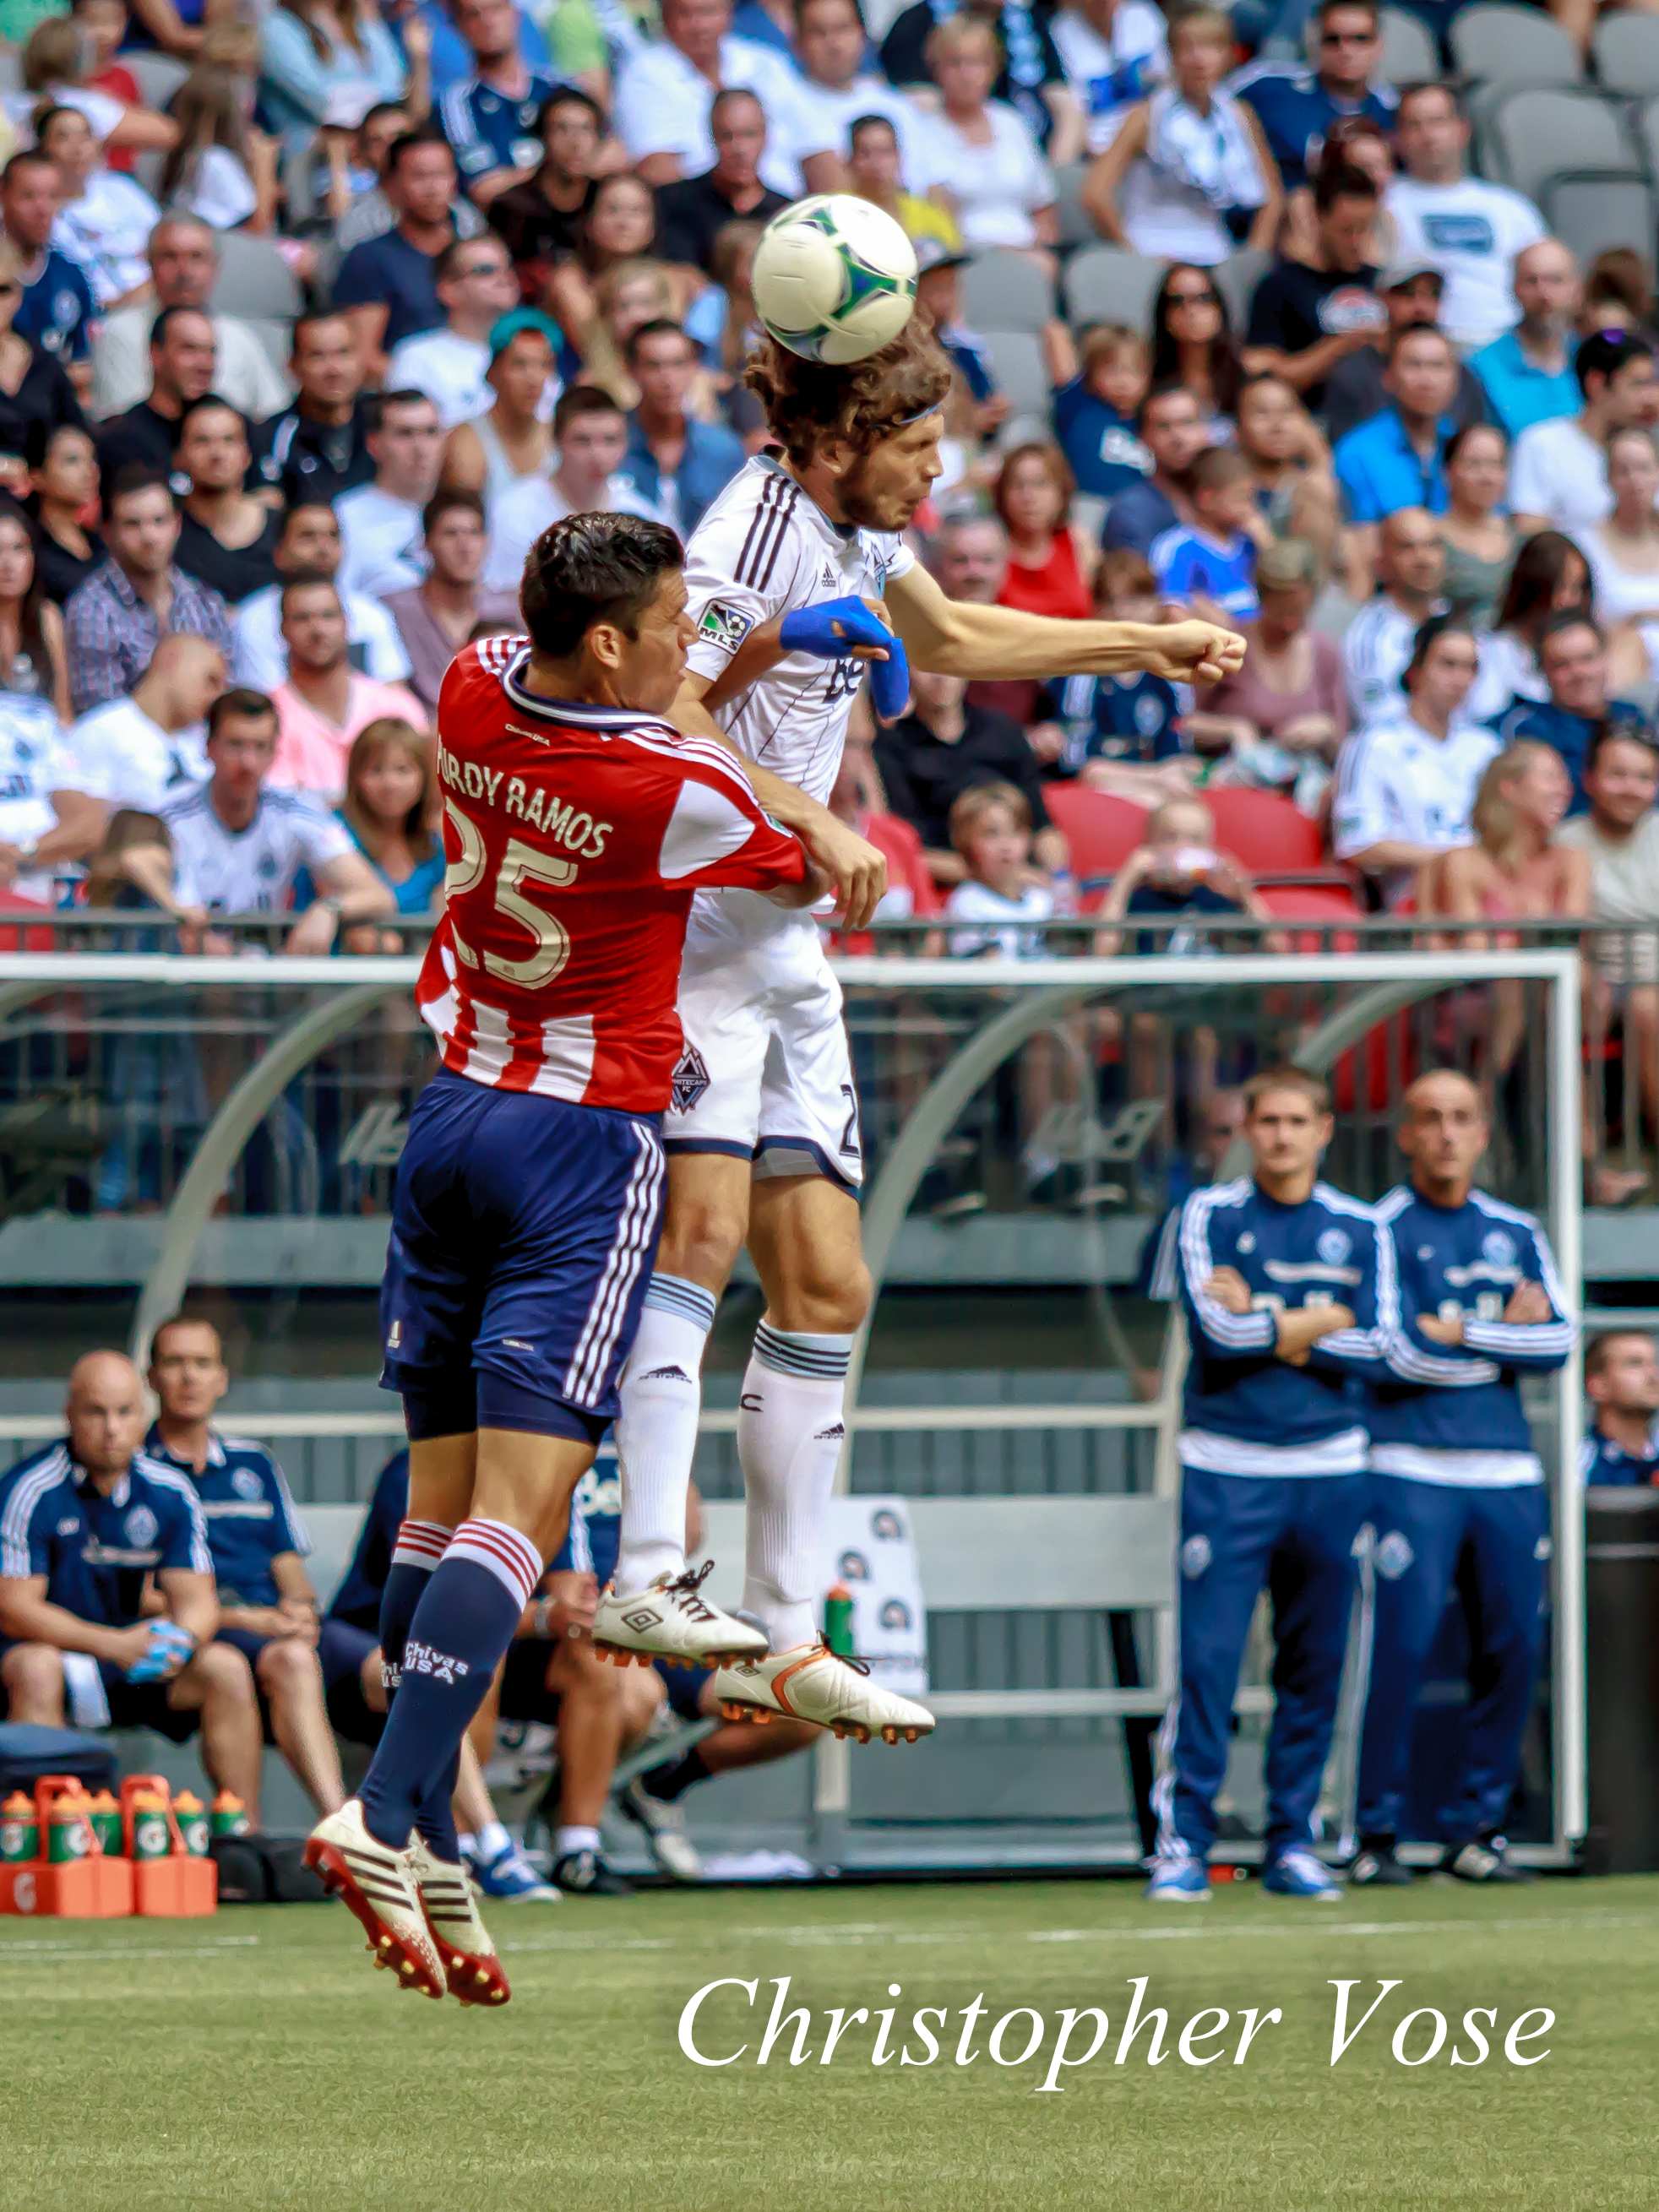 No matter how hard CD Chivas' Steven Purdy tried, he couldn't stop Vancouver Whitecaps FC's Tom Heinemann at BC Place on 1 September 2013.